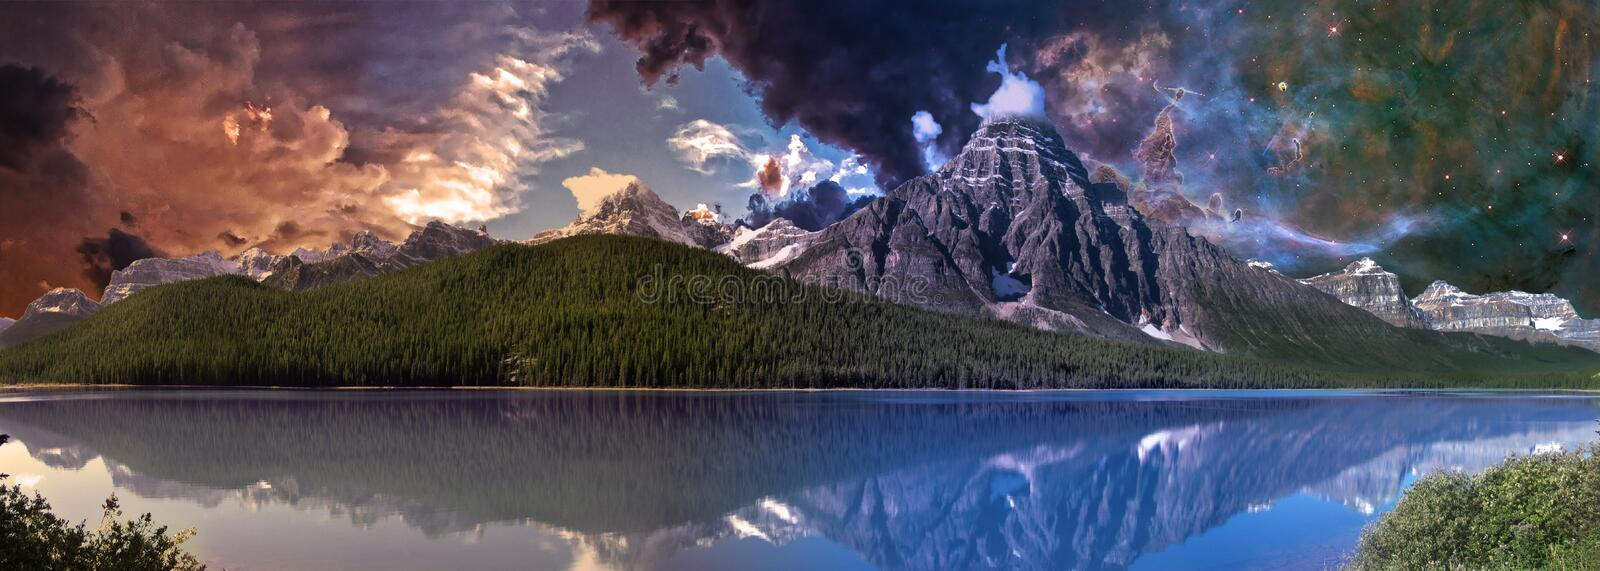 Mountain landscape at dawn stock photo